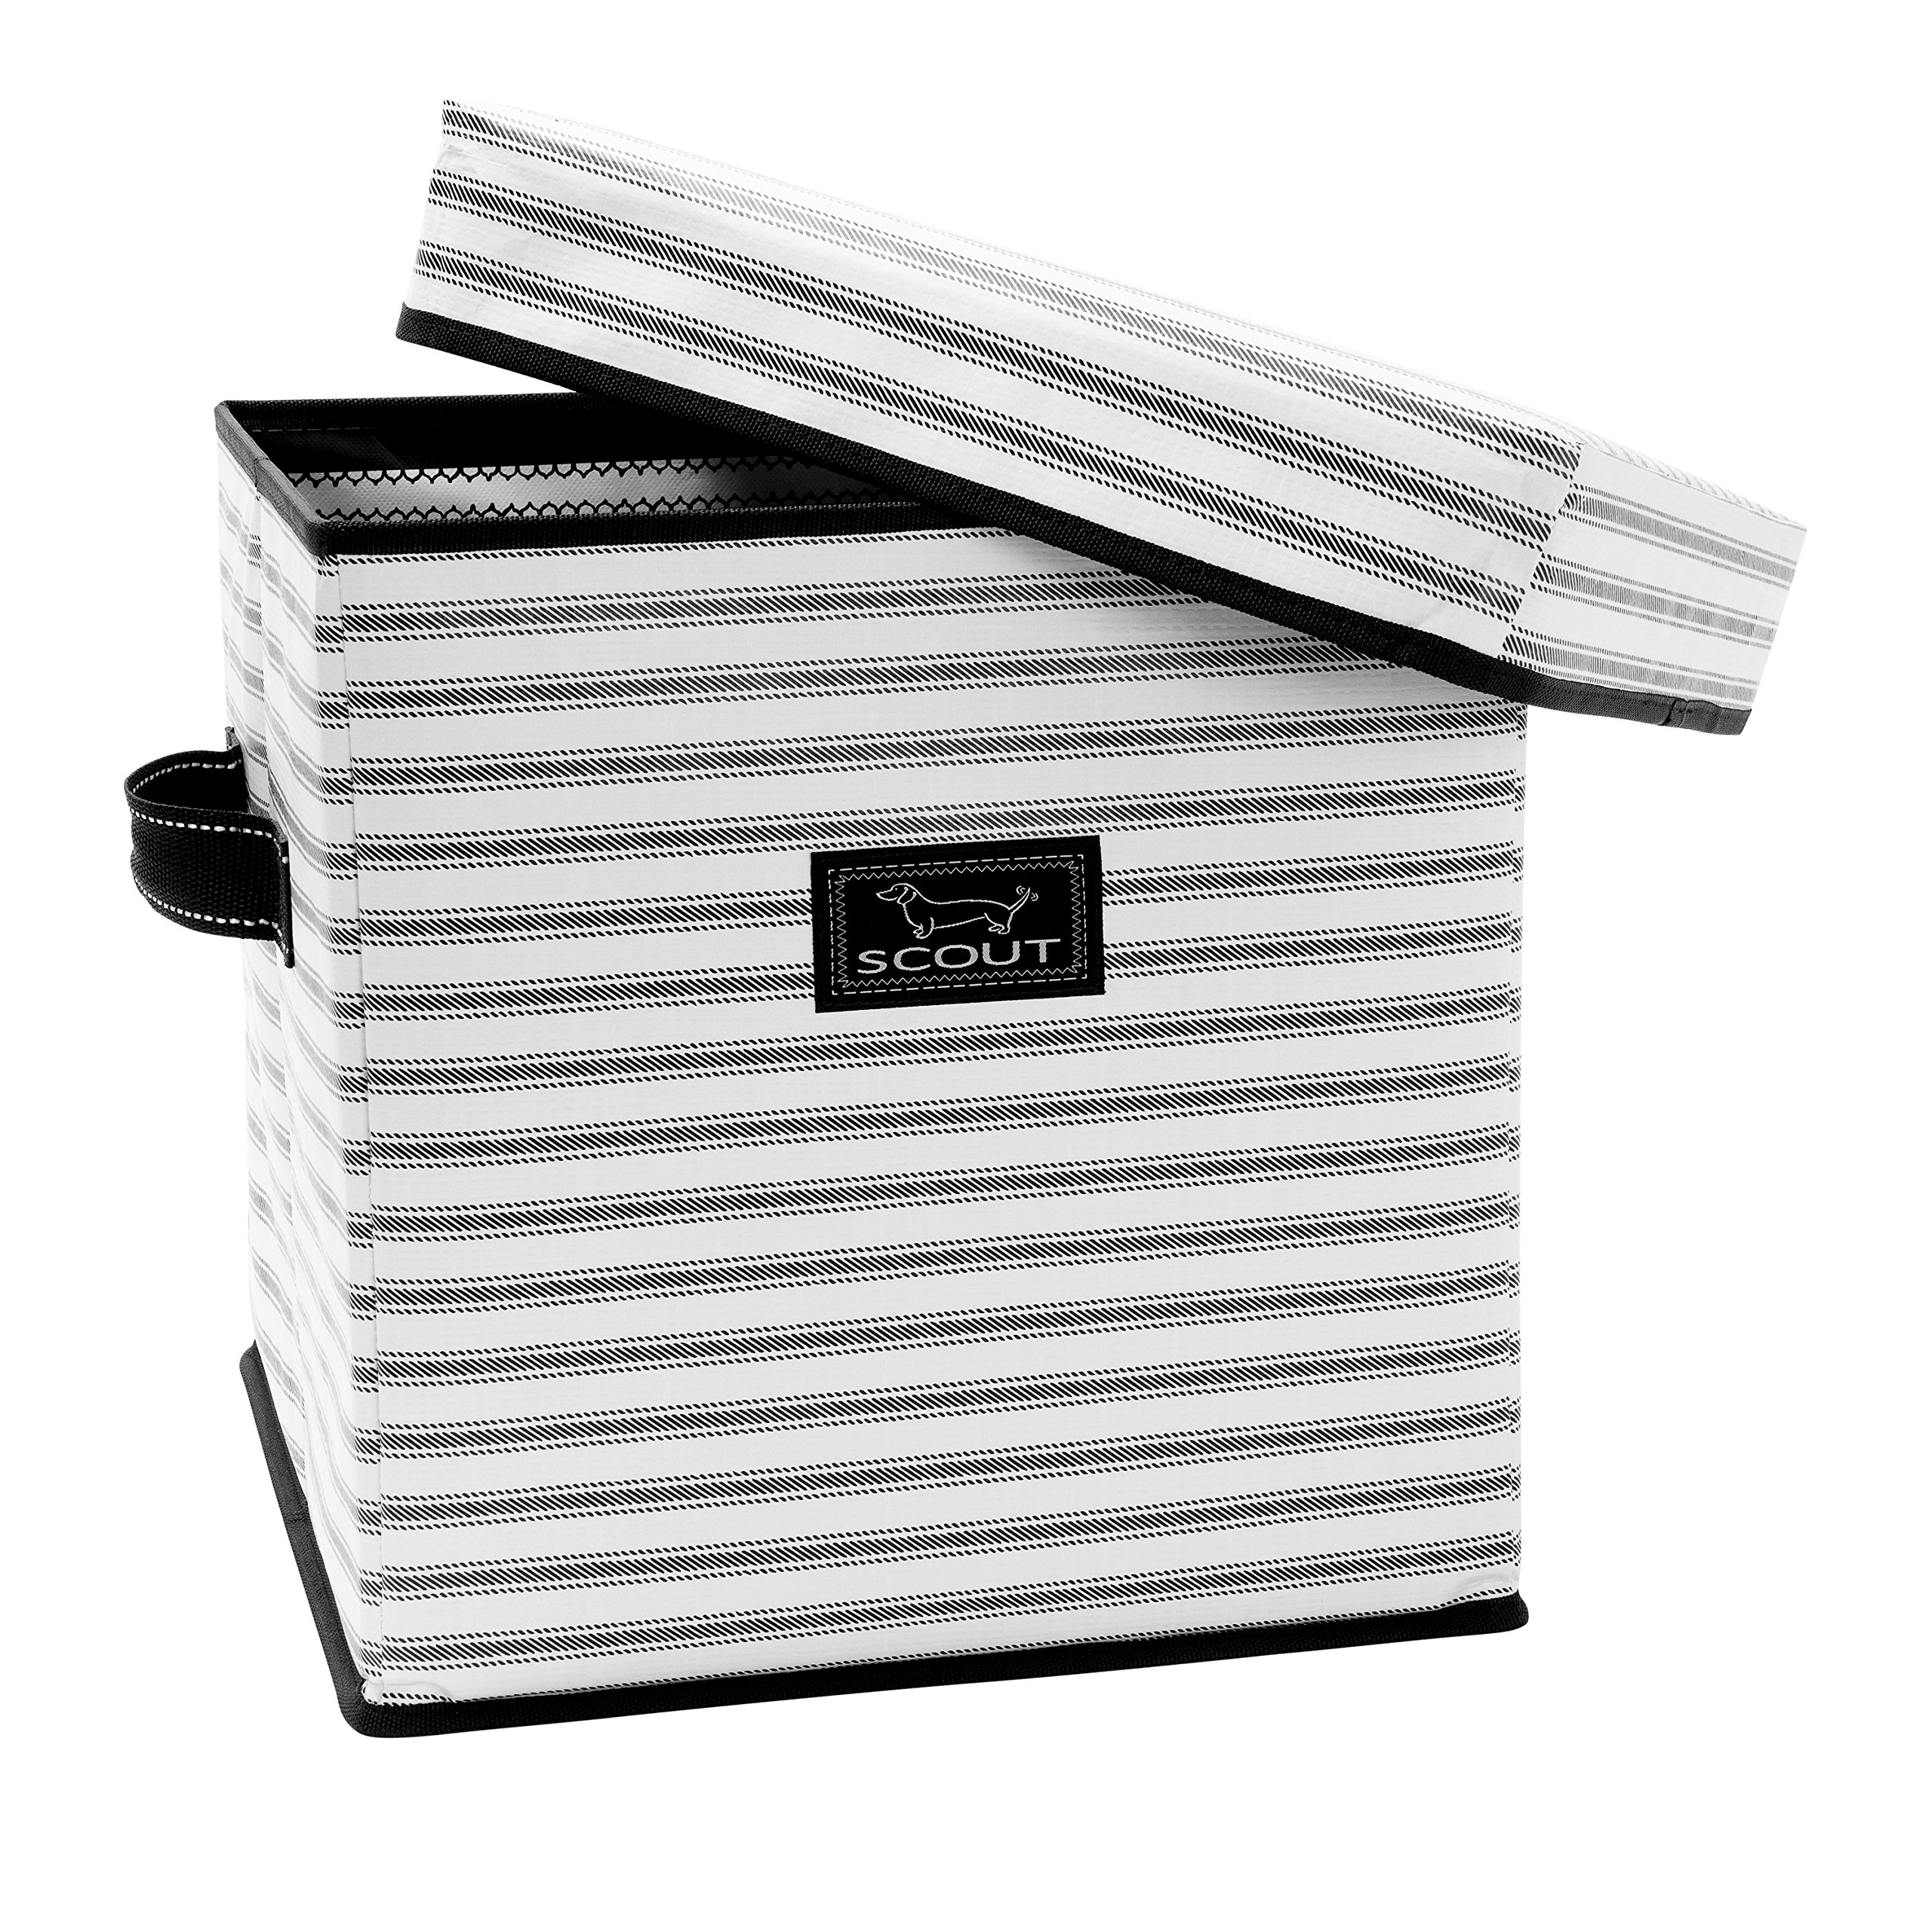 SCOUT Rump Stump Lidded Storage Cube, Collapsible and Stackable, Reinforced Side Handles and Bottom, Water Resistant, College Ruled